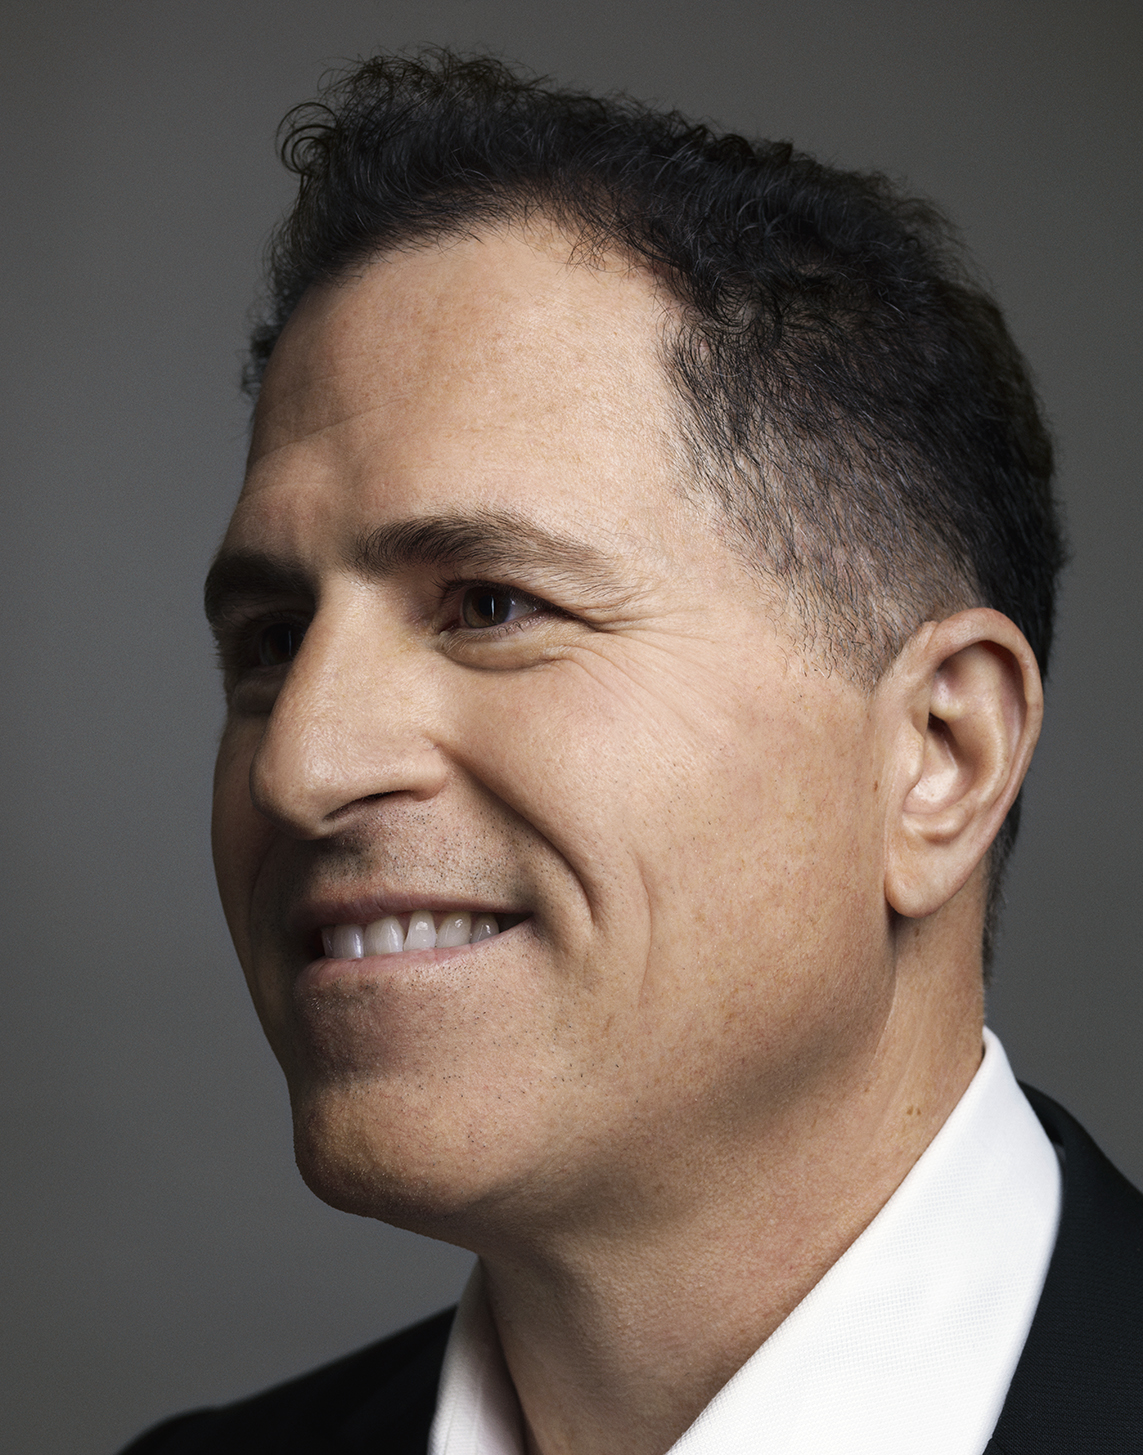 Sources say Dell toyed with the idea of taking his company private for years, believing he couldn't reinvent it under Wall Street's scrutiny.